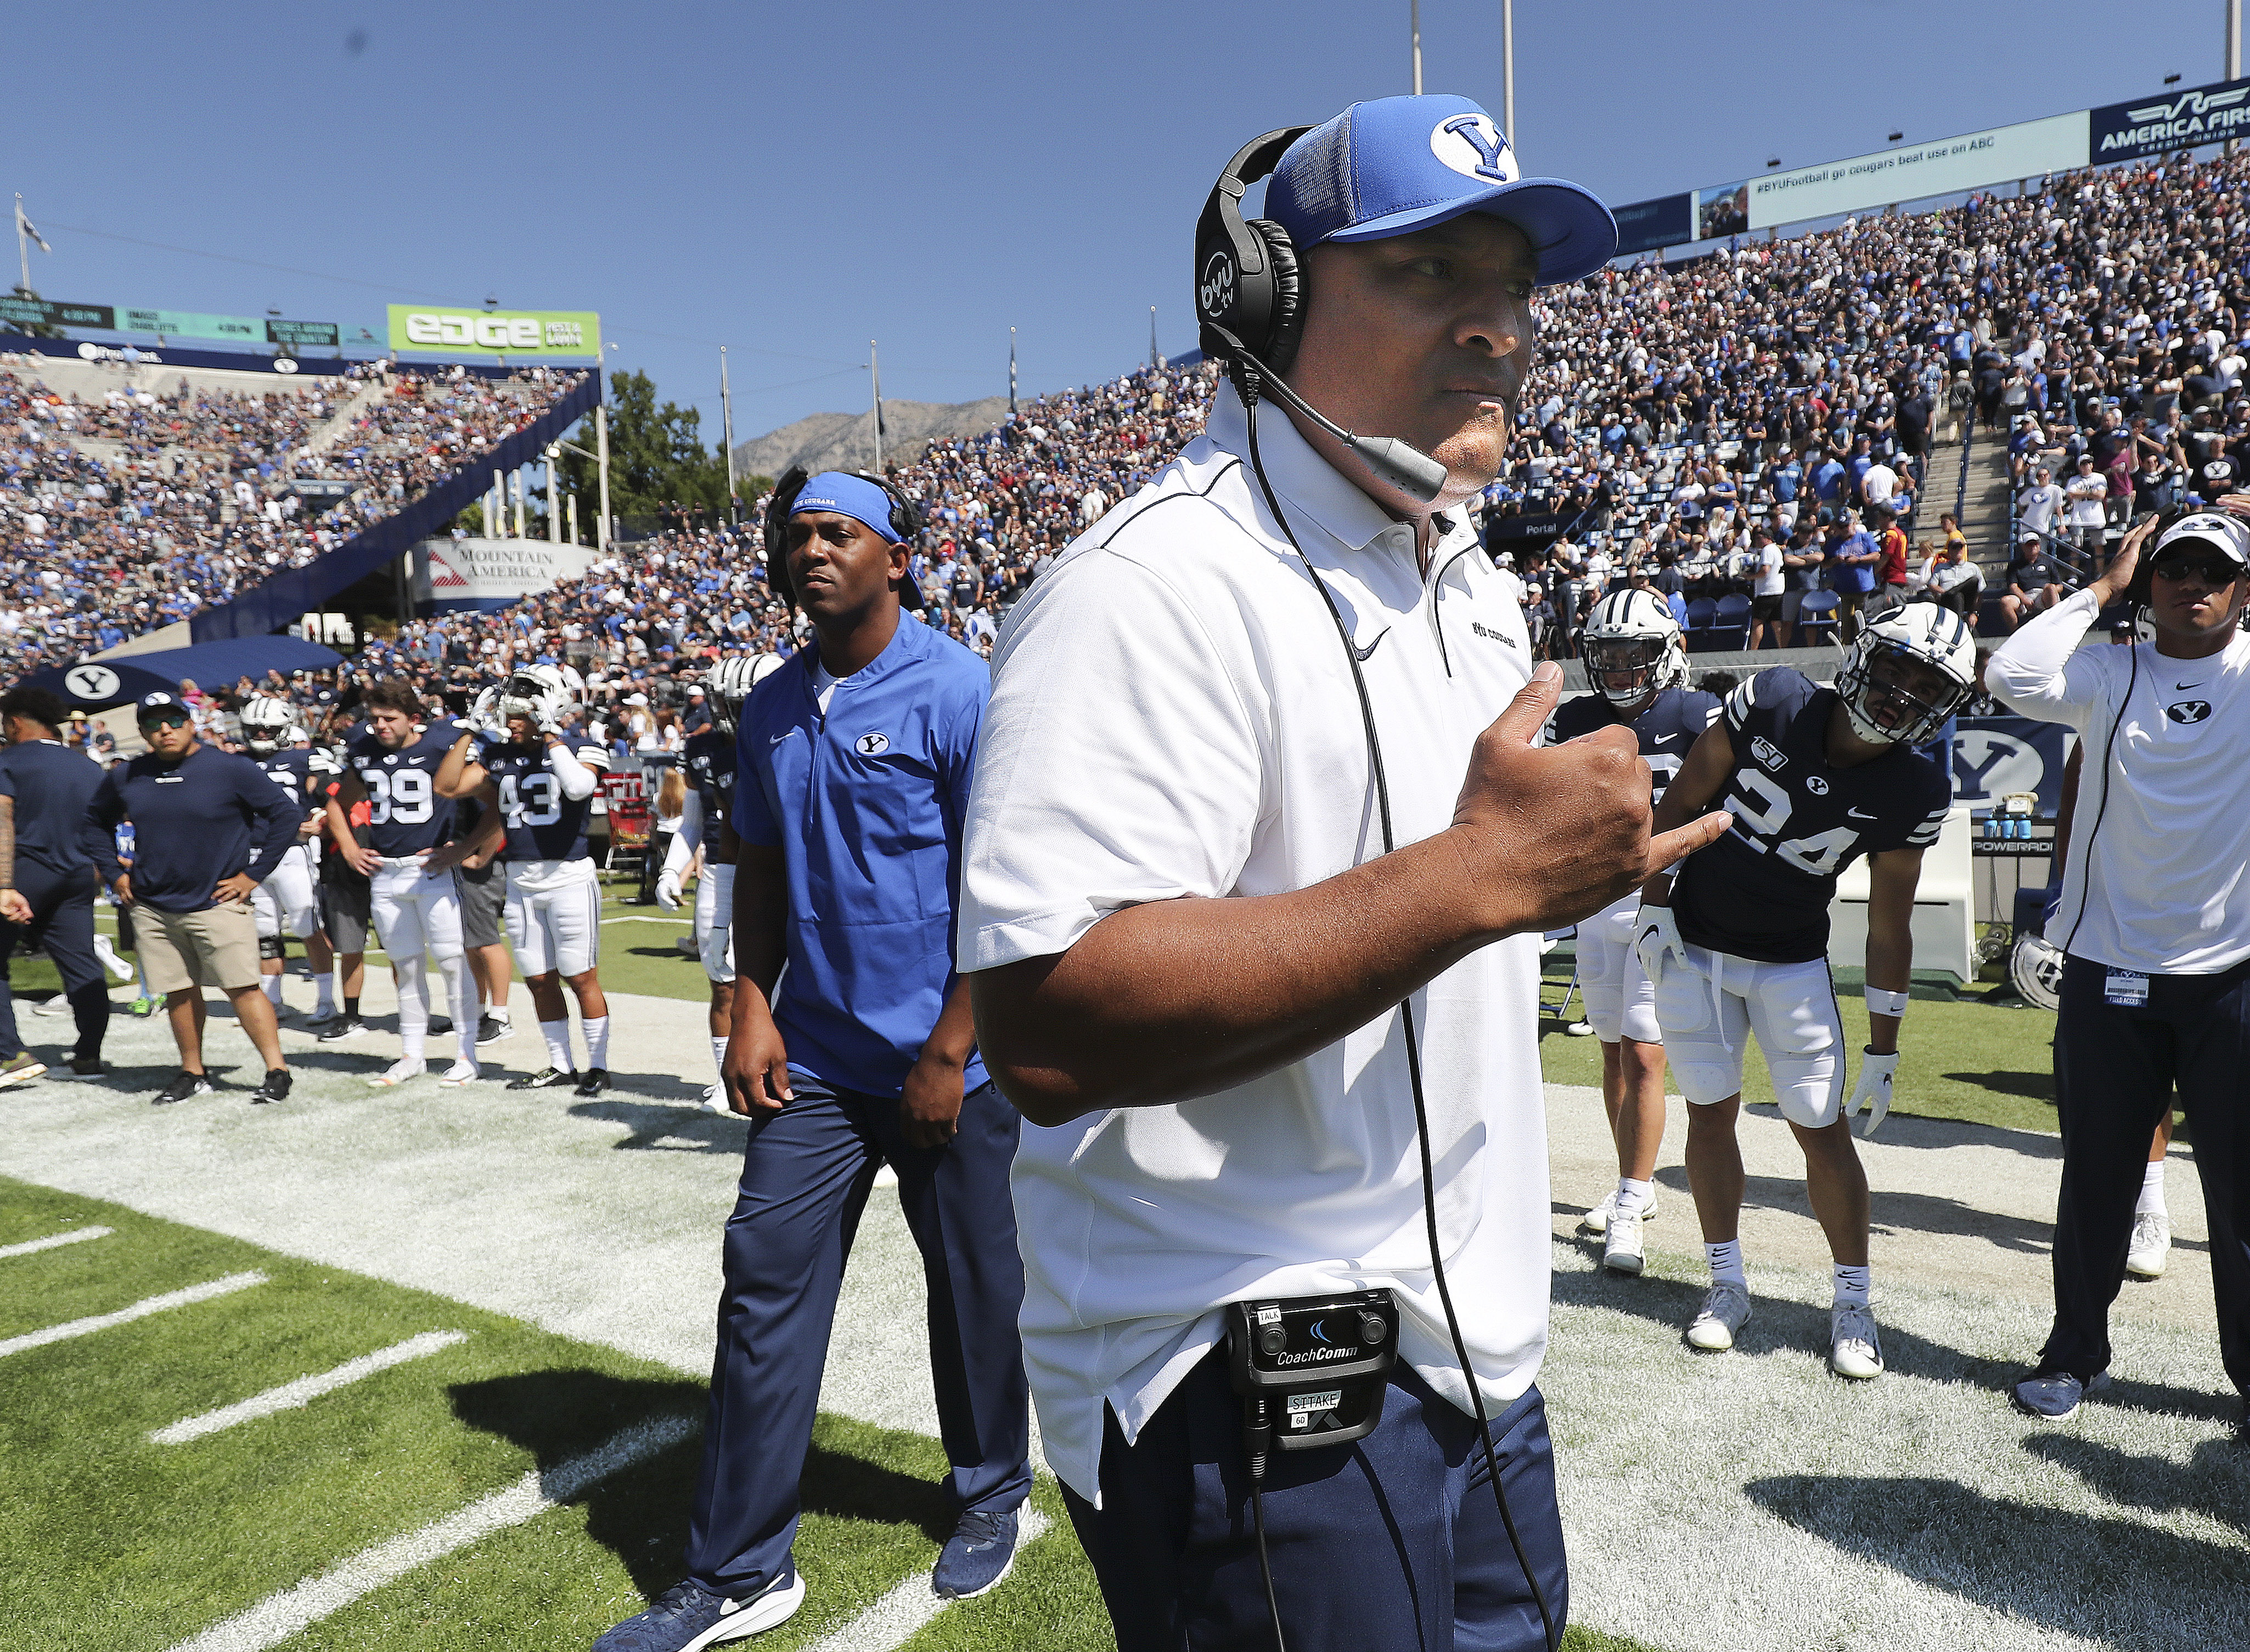 Brigham Young Cougars head coach Kalani Sitake walks the sideline in Provo on Saturday, Sept. 14, 2019. BYU won 30-27 in overtime.